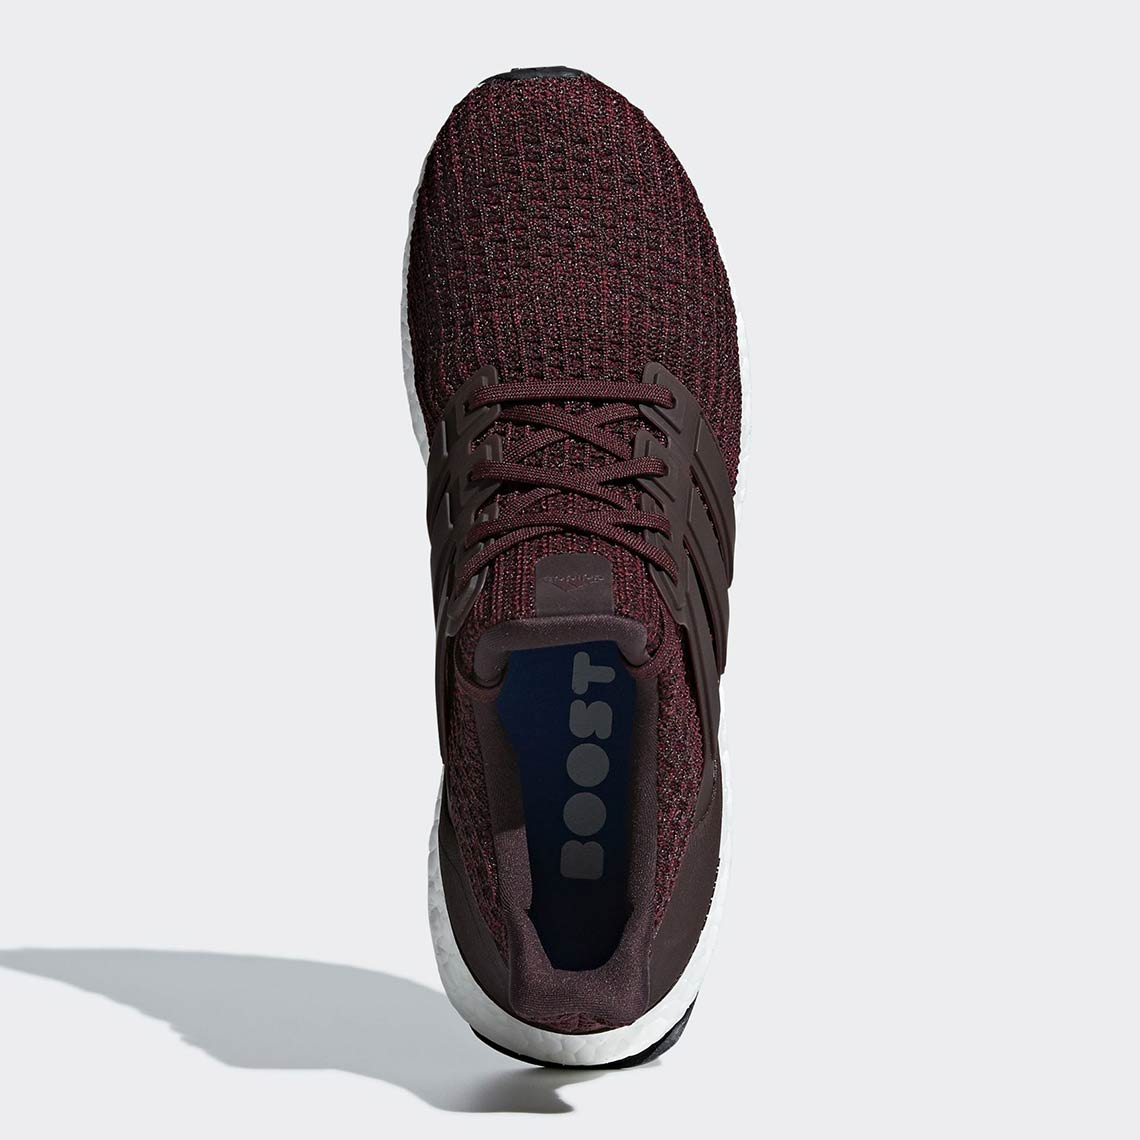 882383746ee85 adidas Ultra Boost 4.0  180. Style Code  CM8115. Advertisement.  Advertisement